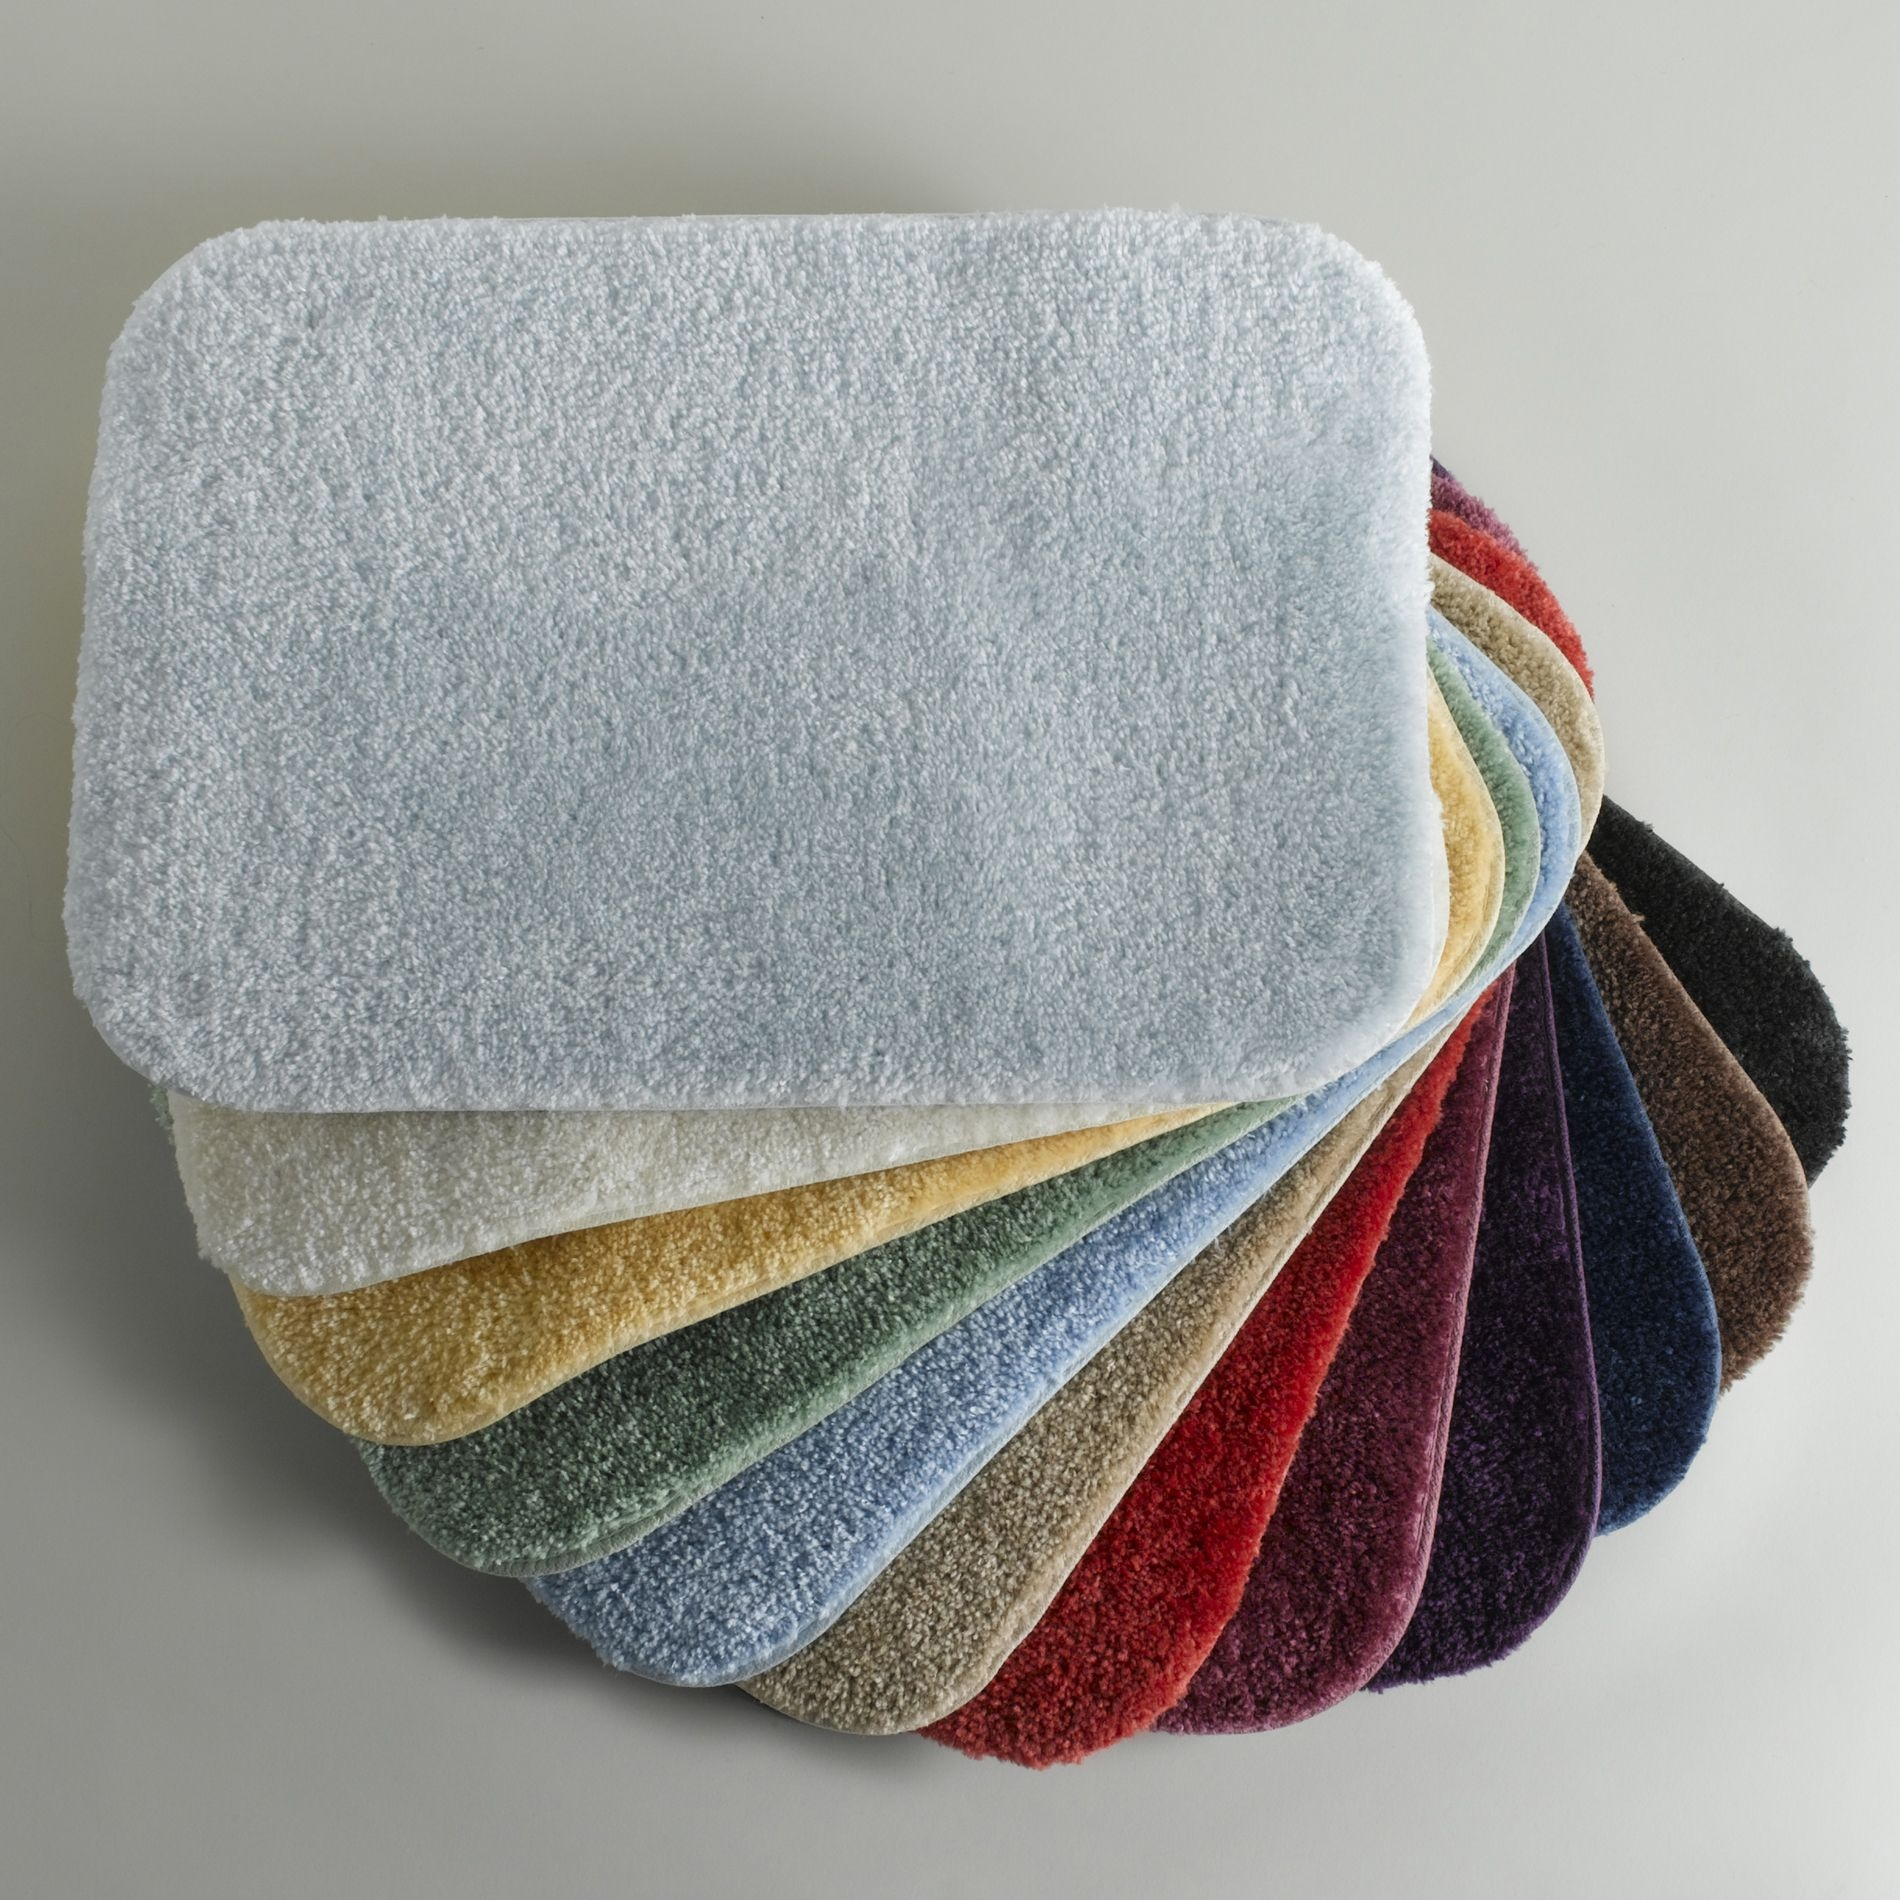 Oval Bathroom Mats